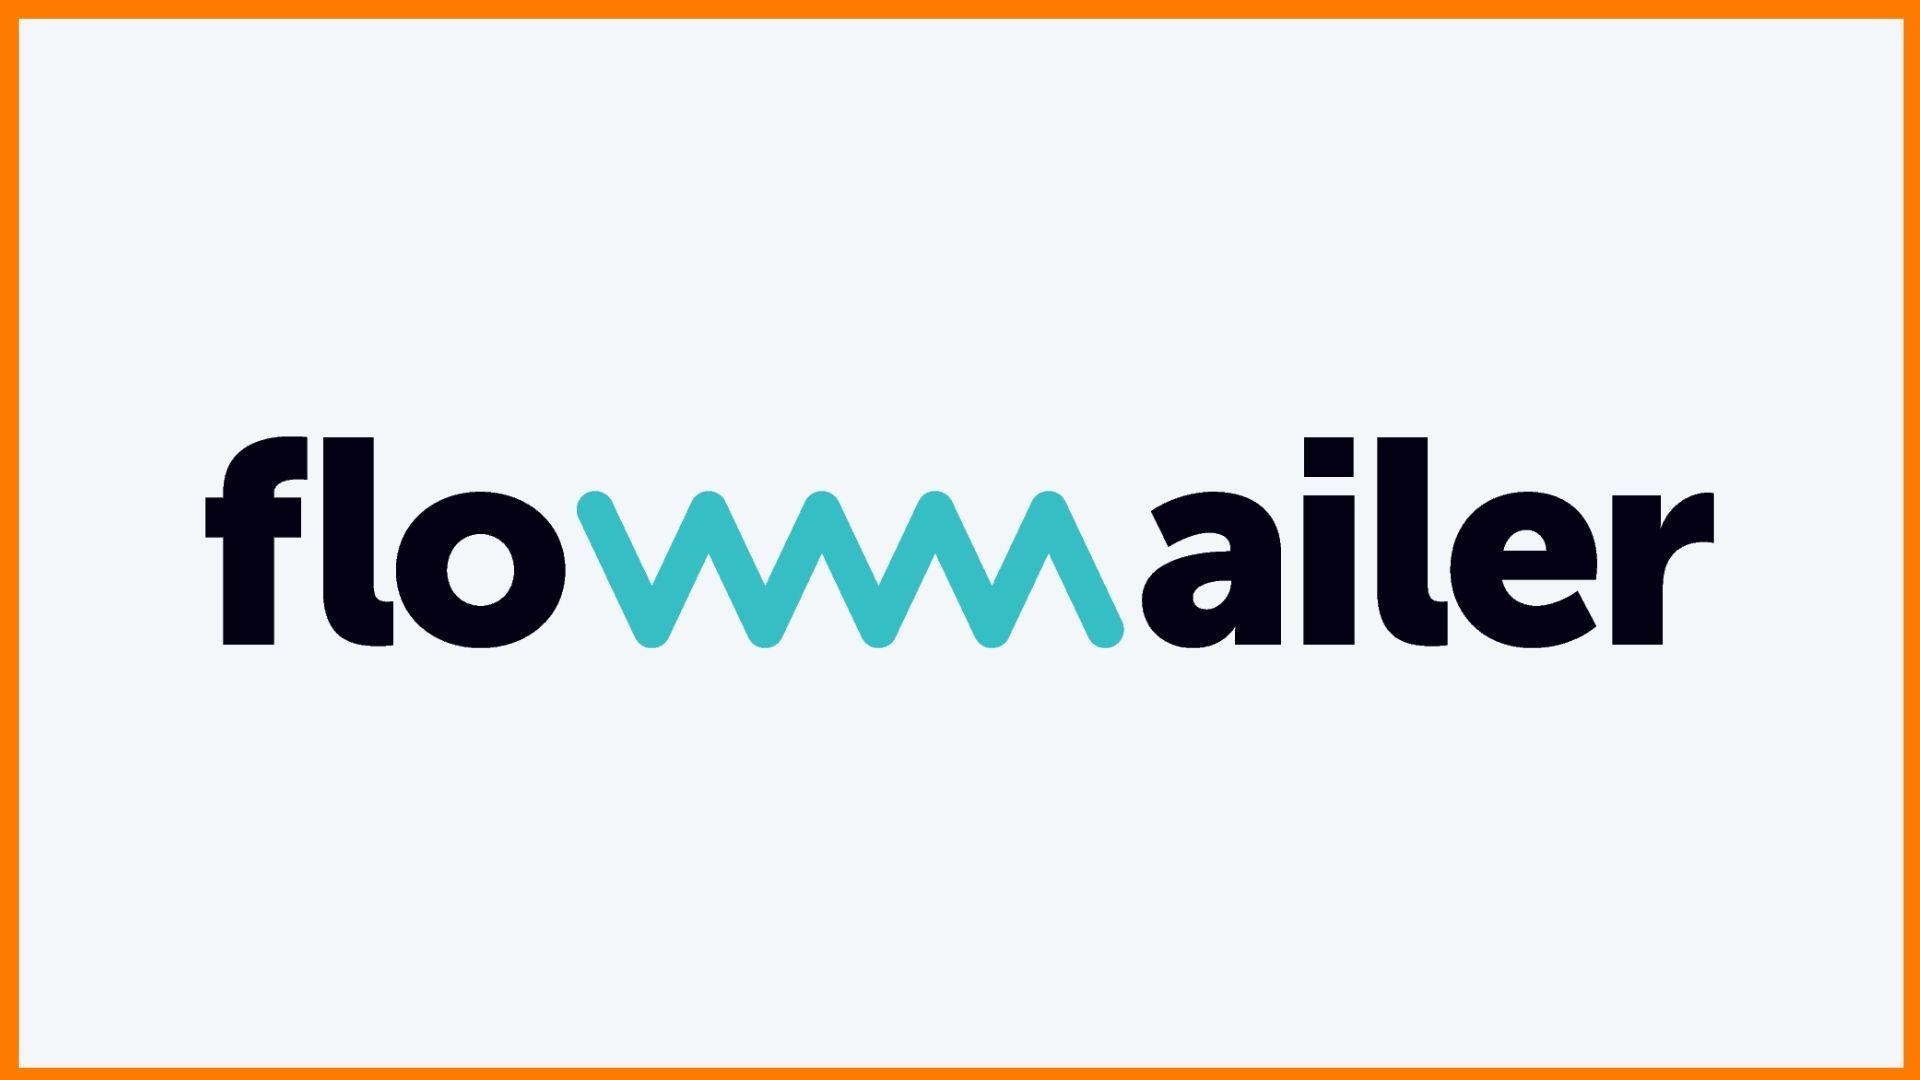 Flowmailer - The Email Delivery Platform you can rely on!